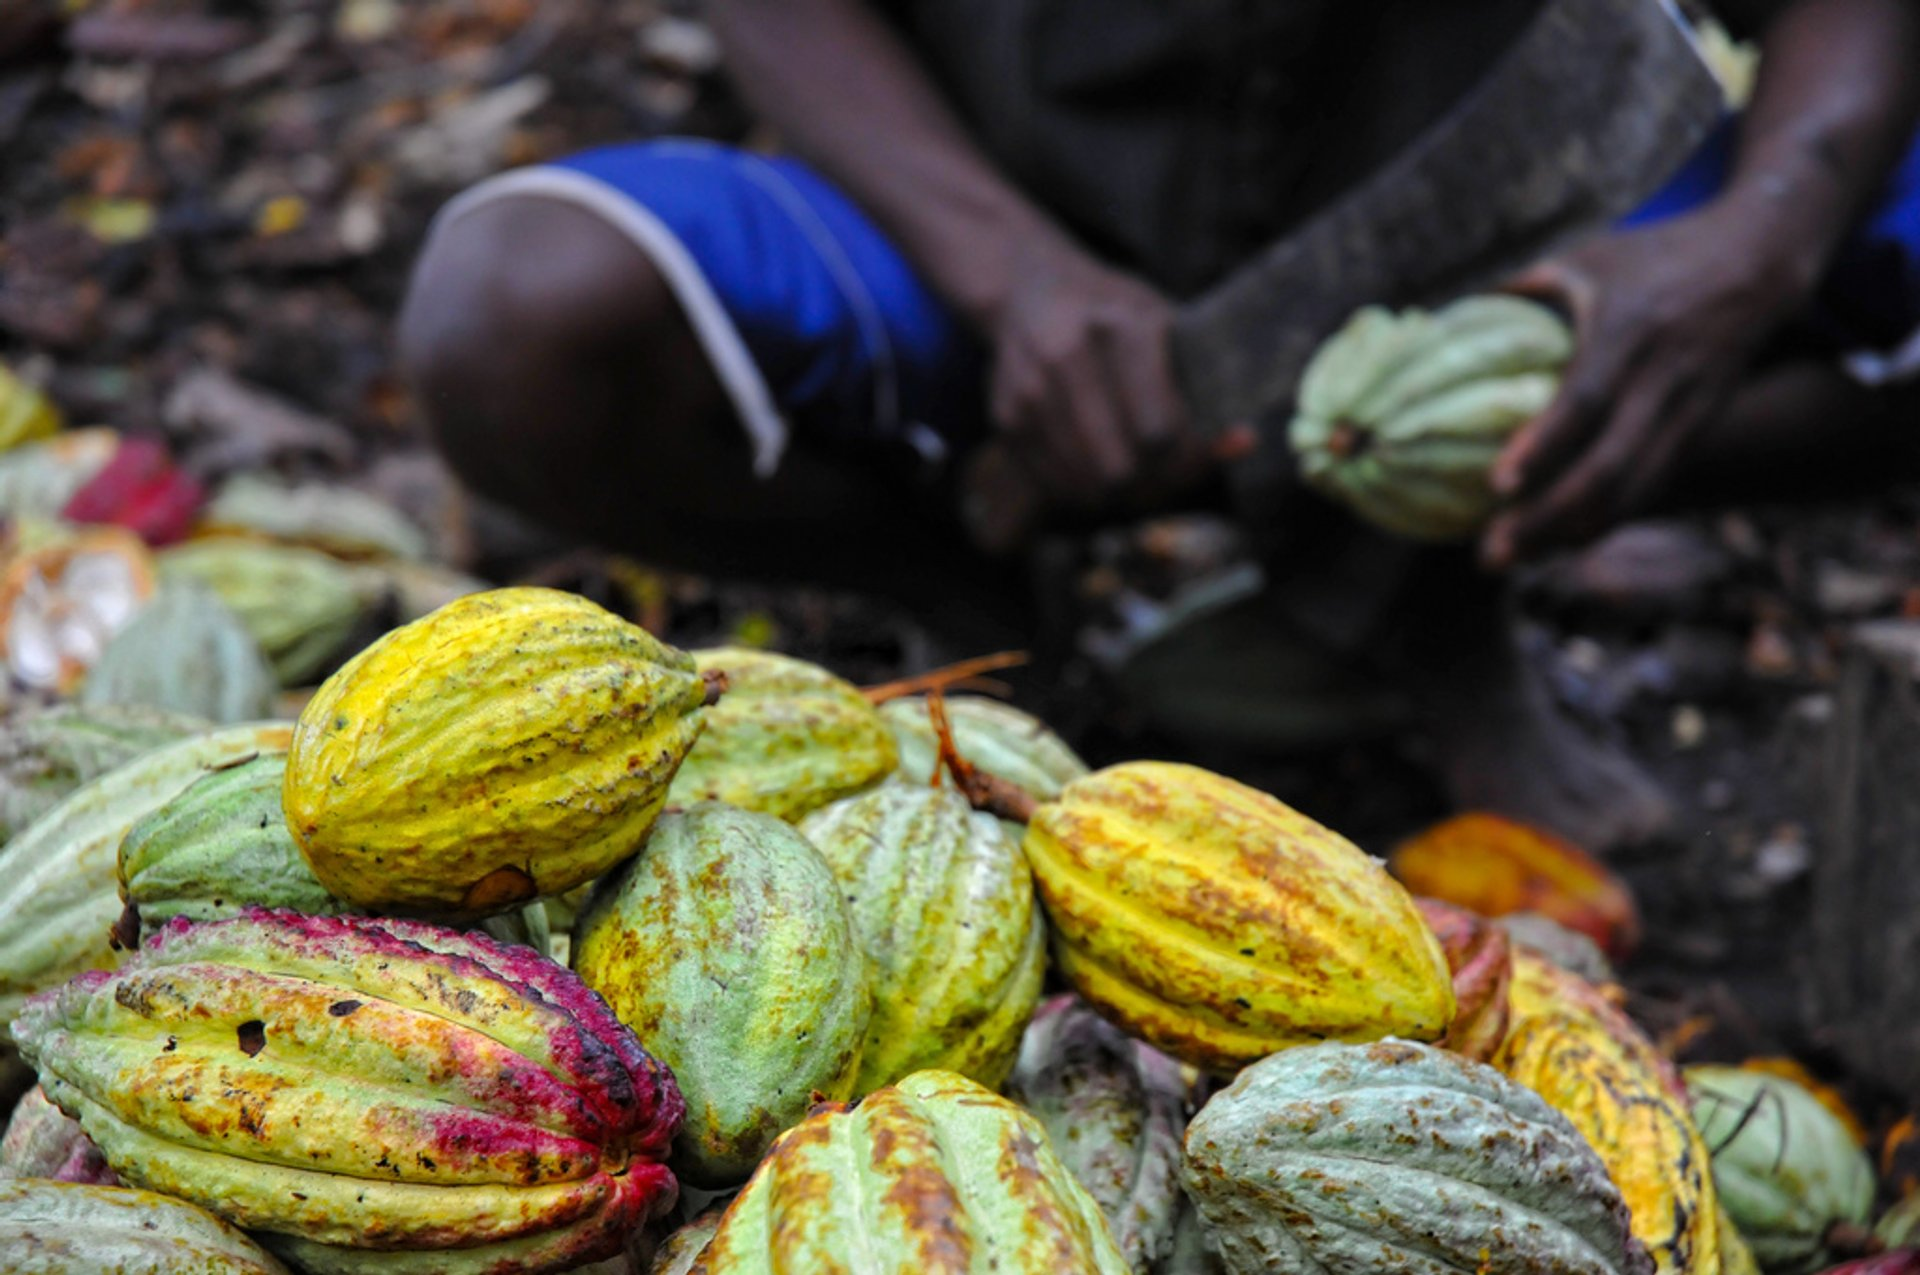 Cutting the cocoa pods 2019